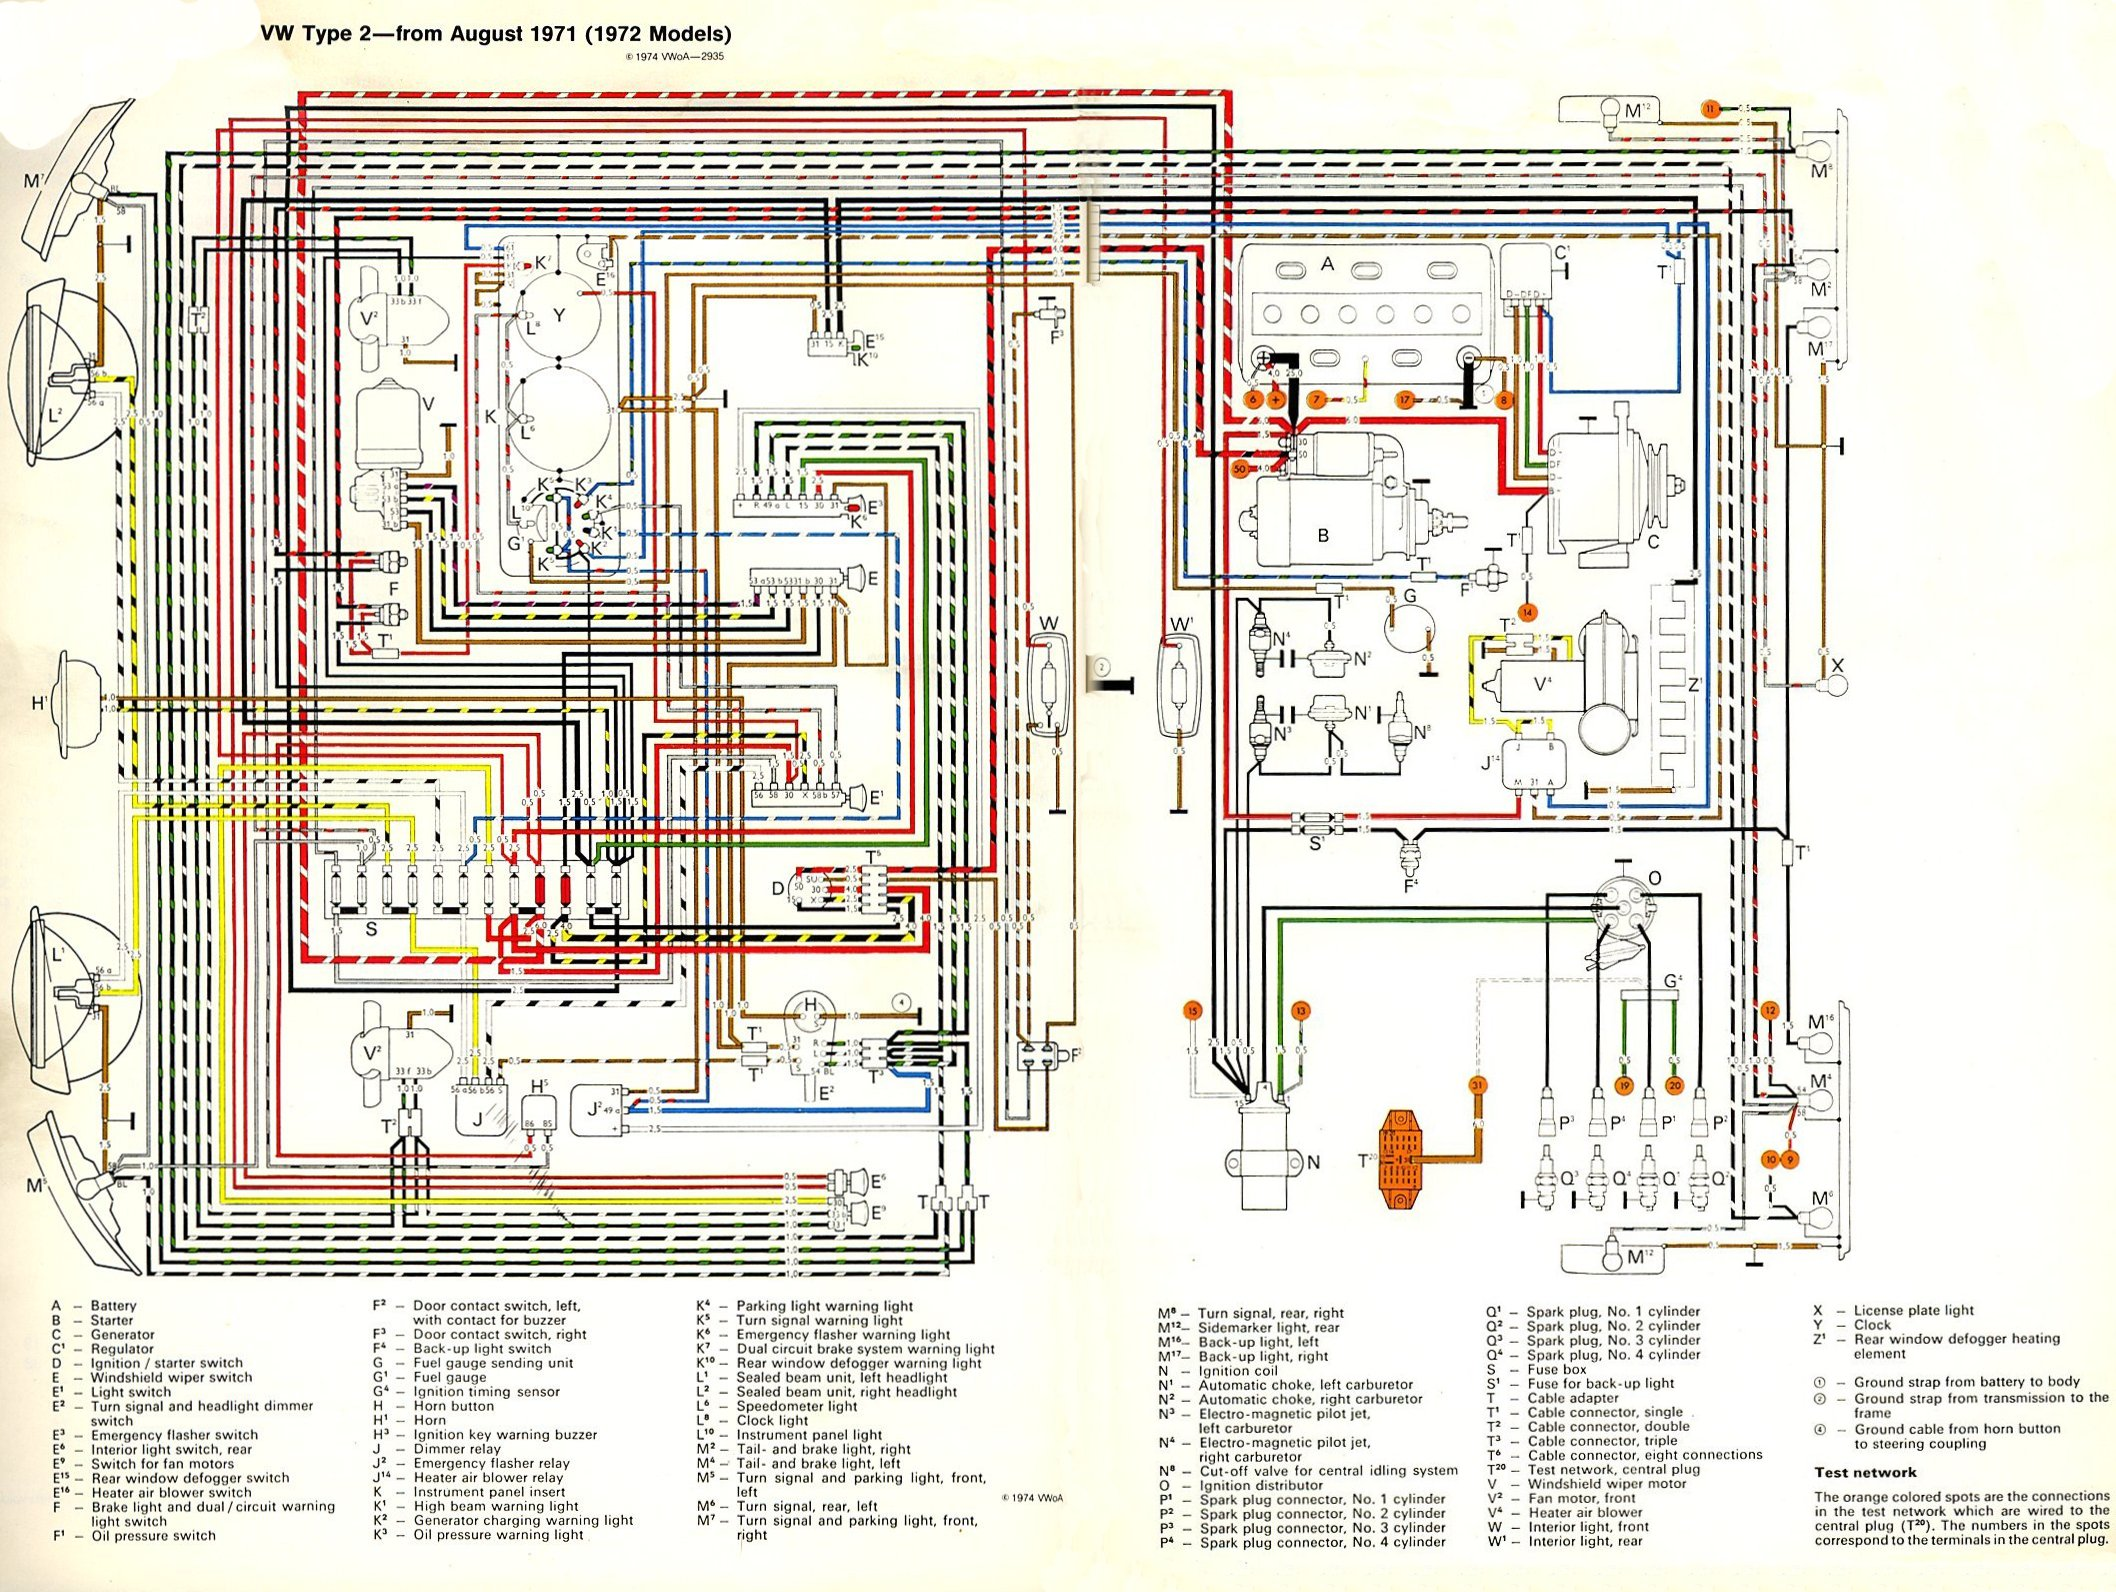 thesamba.com :: type 2 wiring diagrams radio wire diagram 97 vw #2